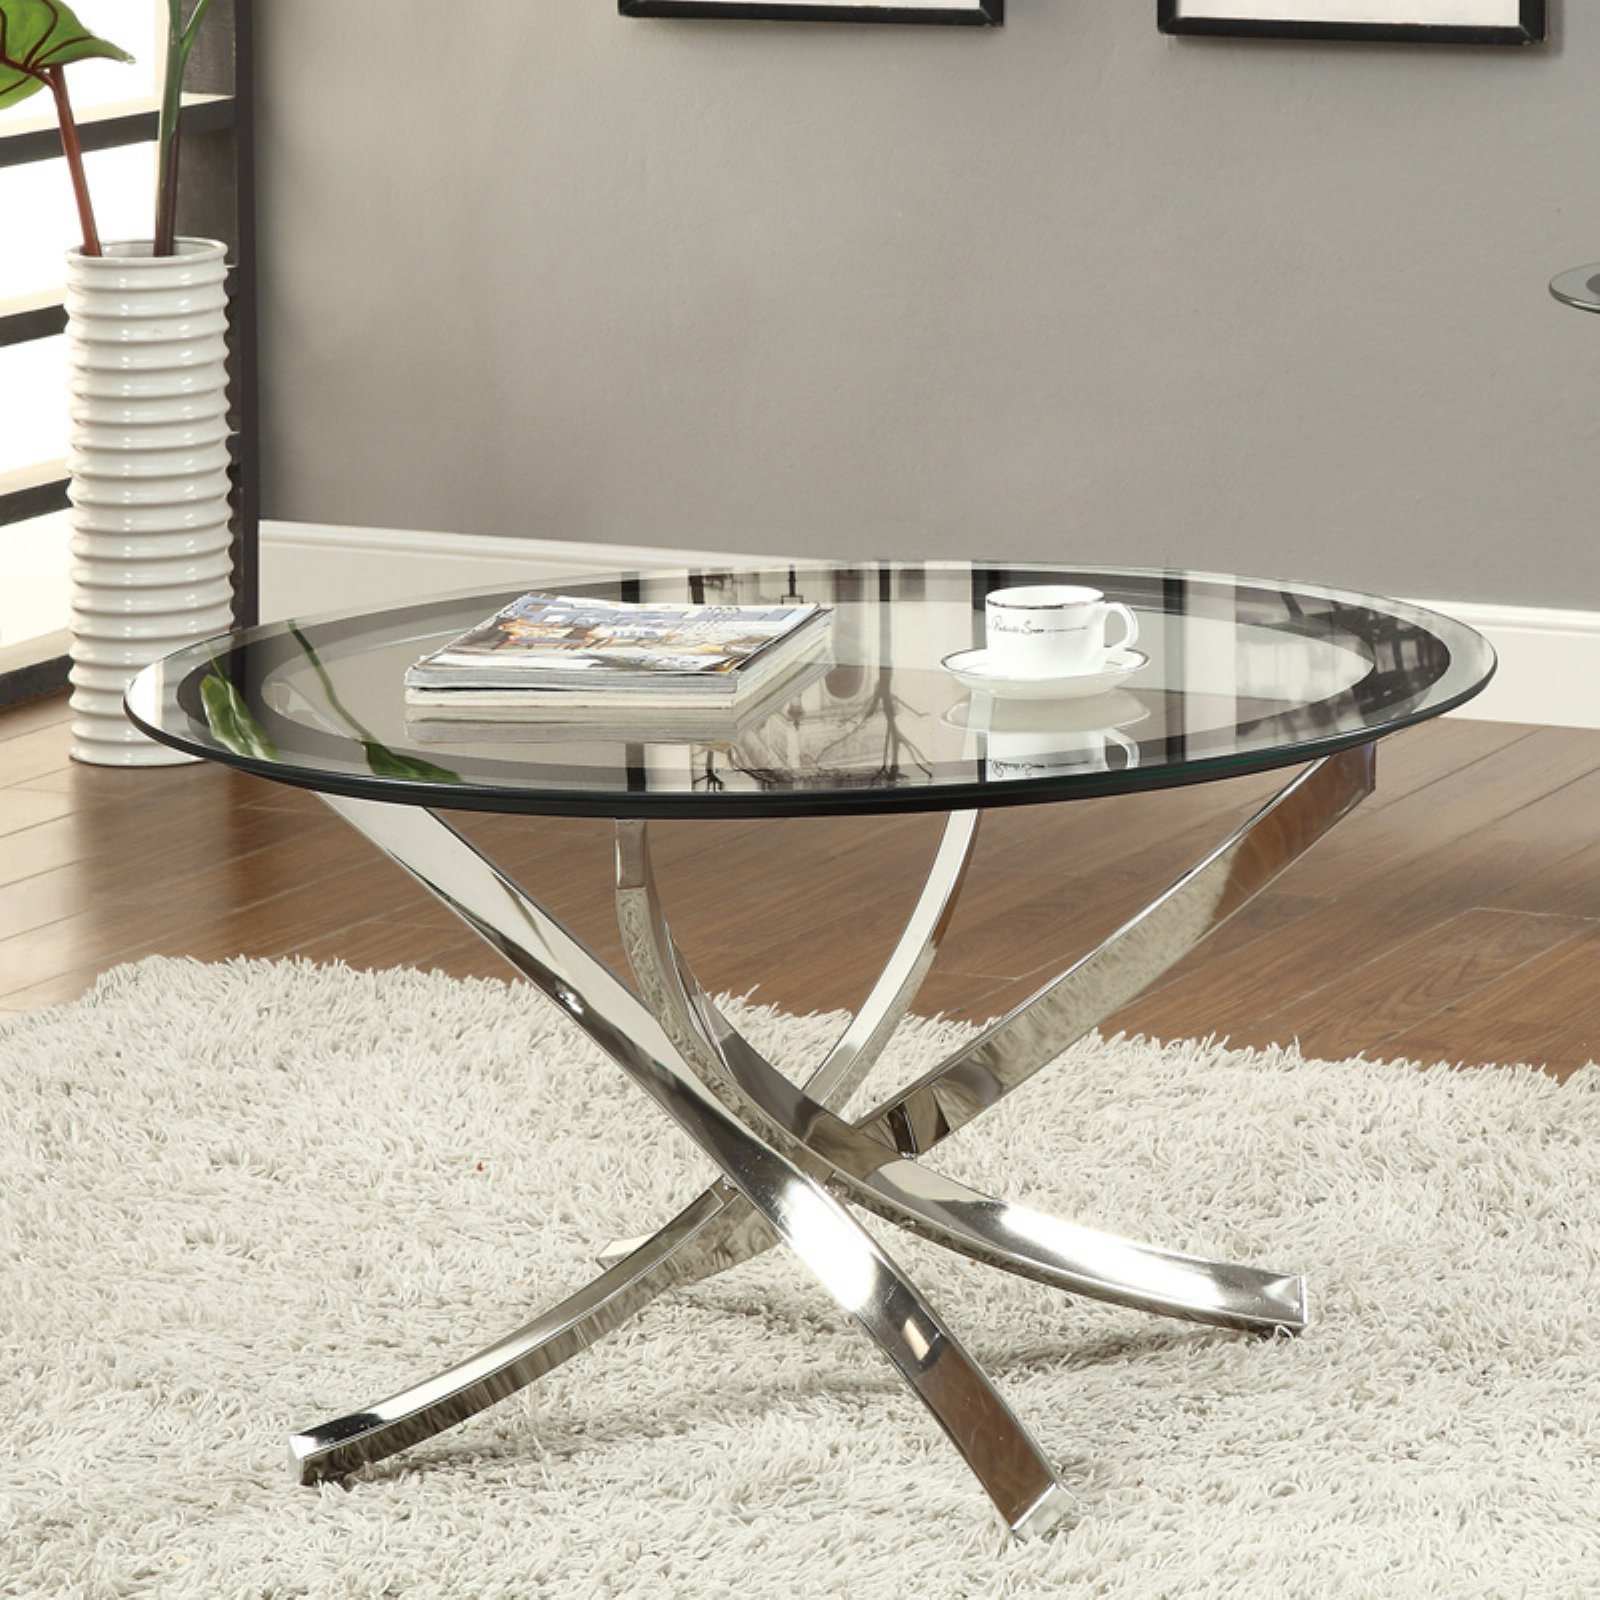 Incroyable Coaster Furniture Glass Top Round Coffee Table